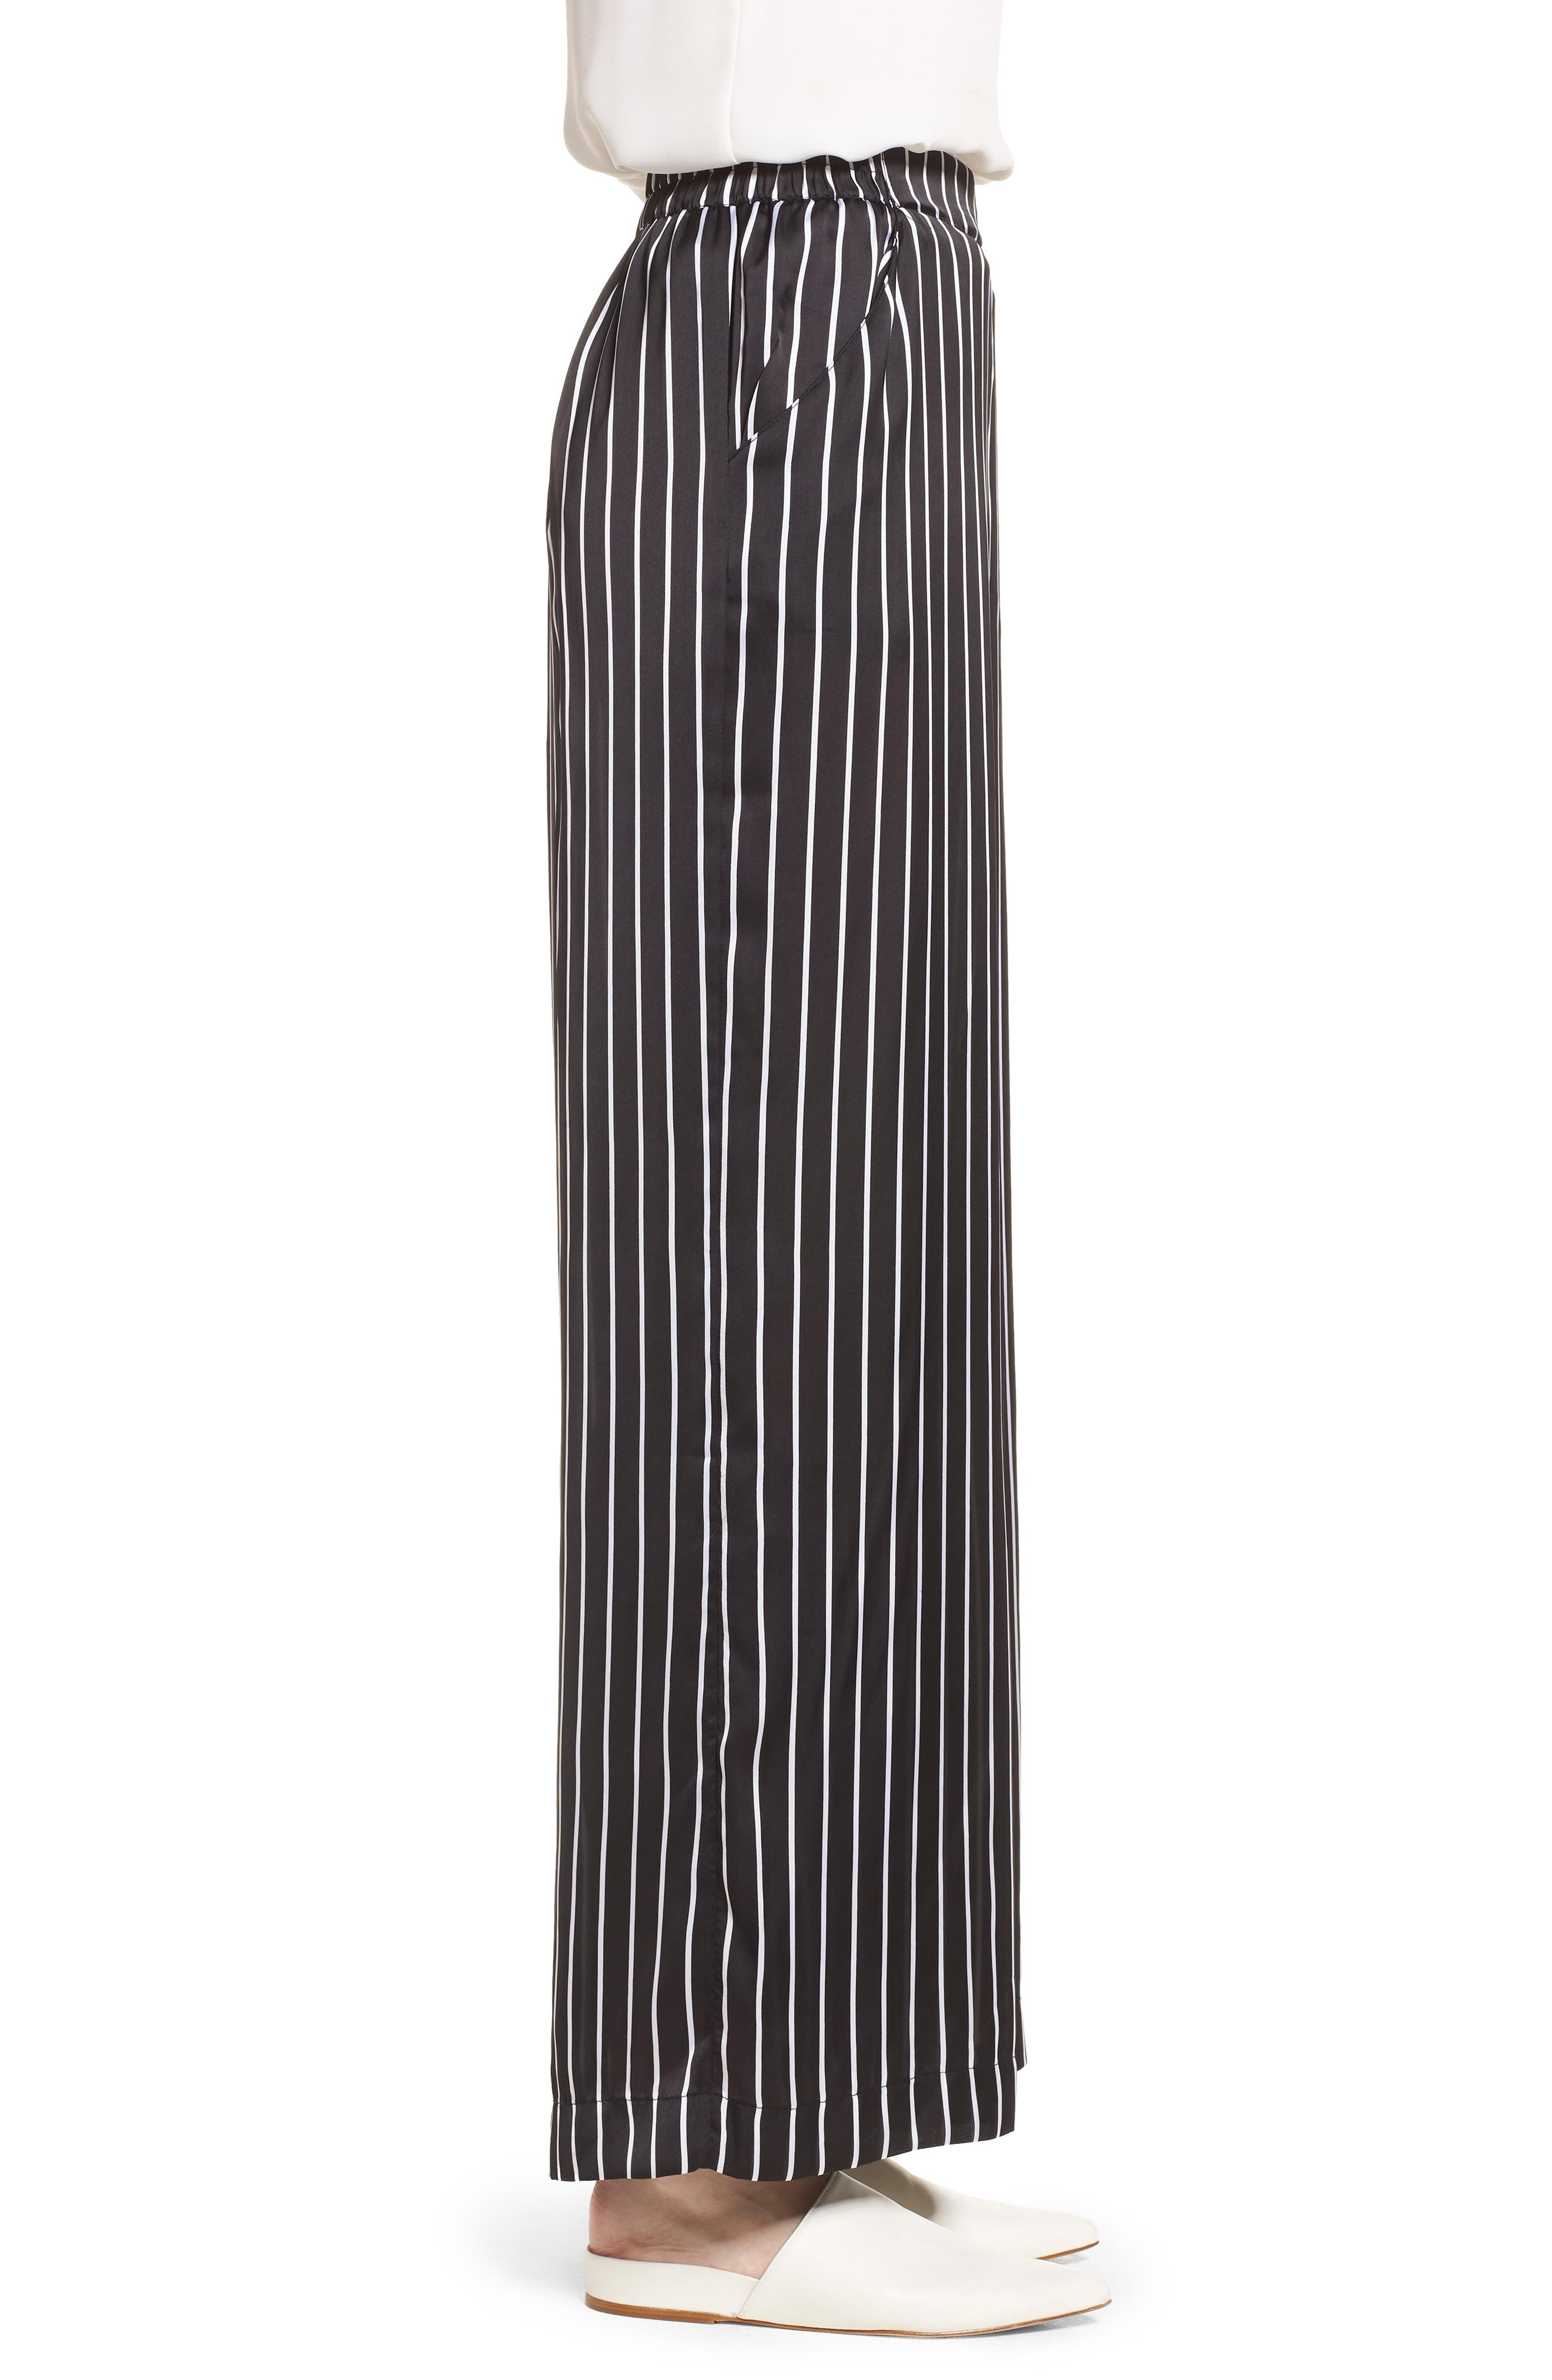 Kenneth Cole Wide Leg Pants,                             Alternate thumbnail 3, color,                             STREET STRIPE BLACK